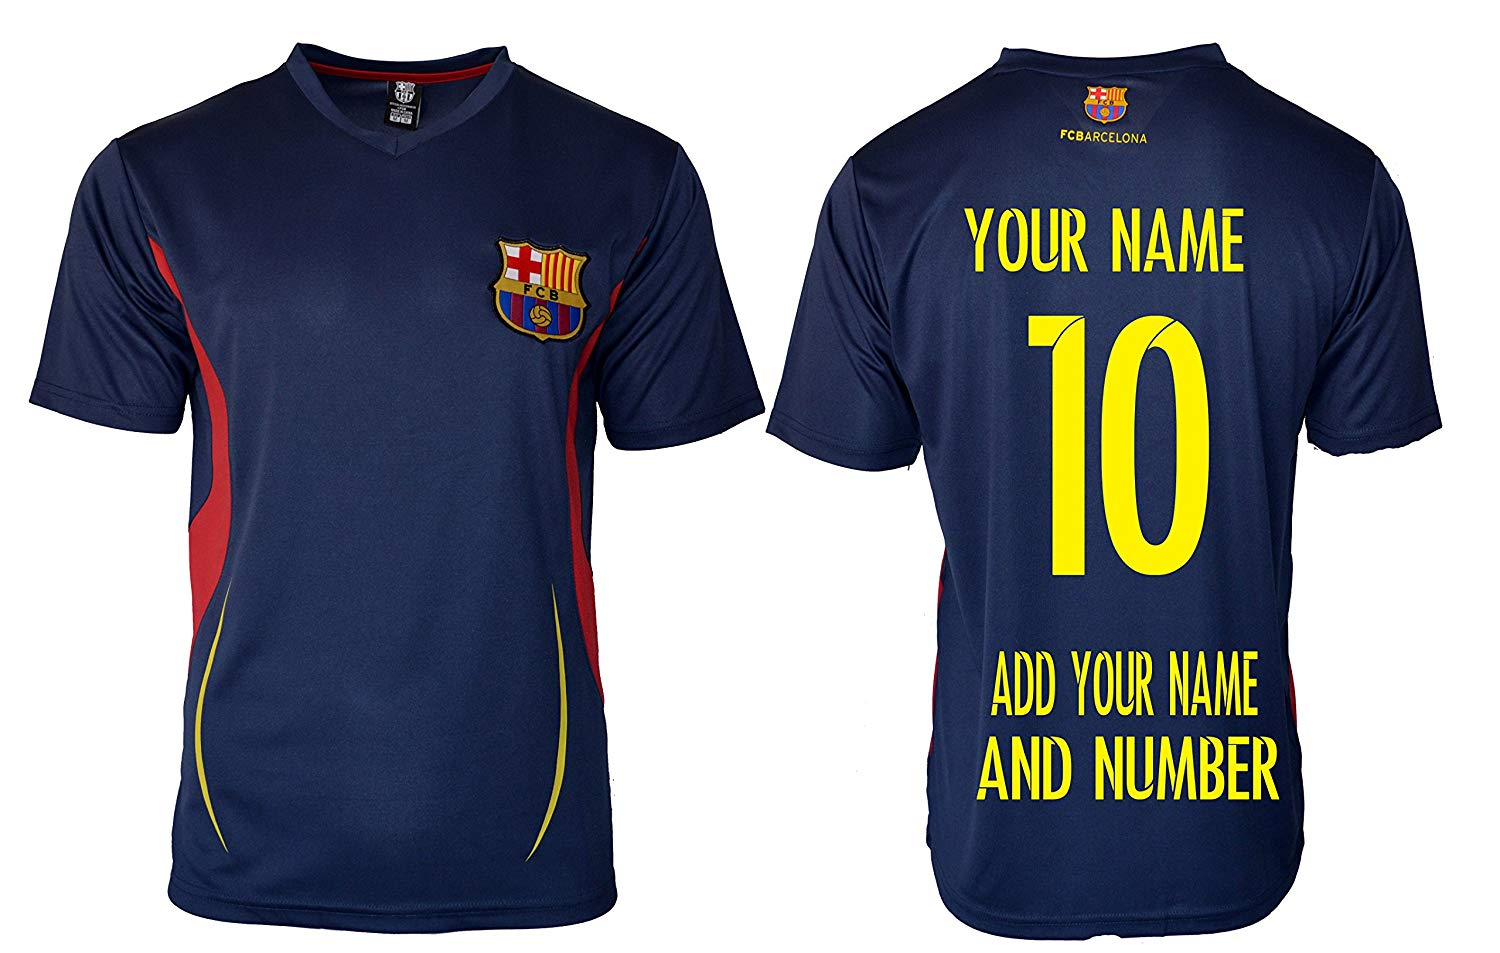 0845facd0ba Get Quotations · FC Barcelona Soccer Jersey Men s Adult Training  Performance any Name Customized T1E23